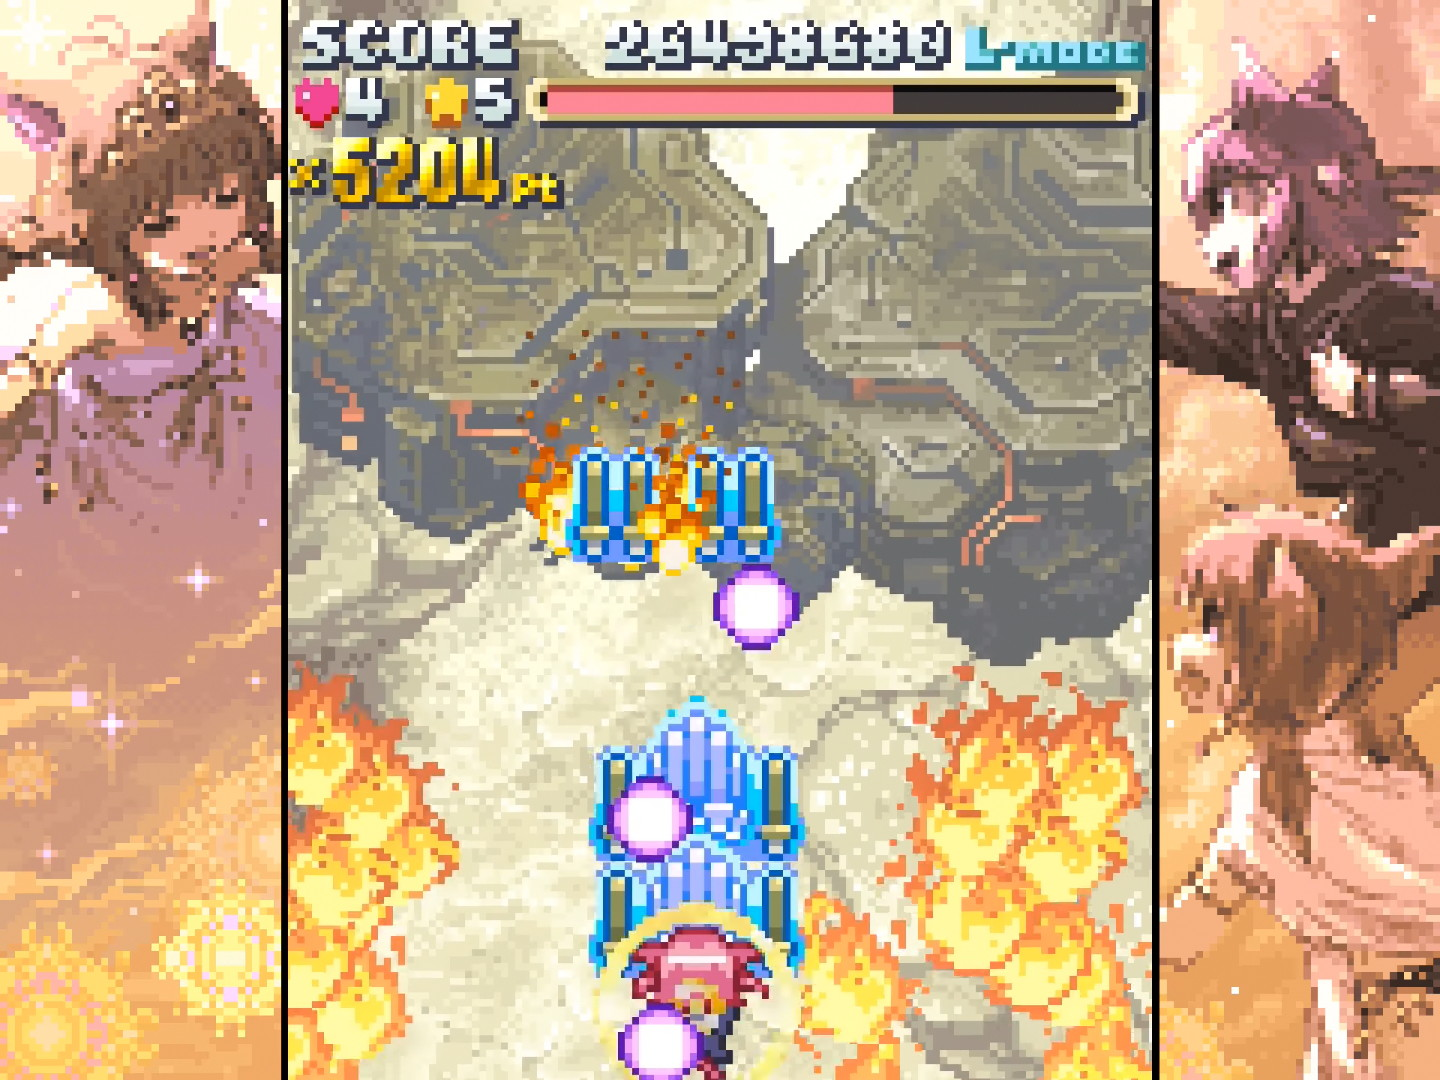 gameplay screenshot, featuring some hella cute margin art